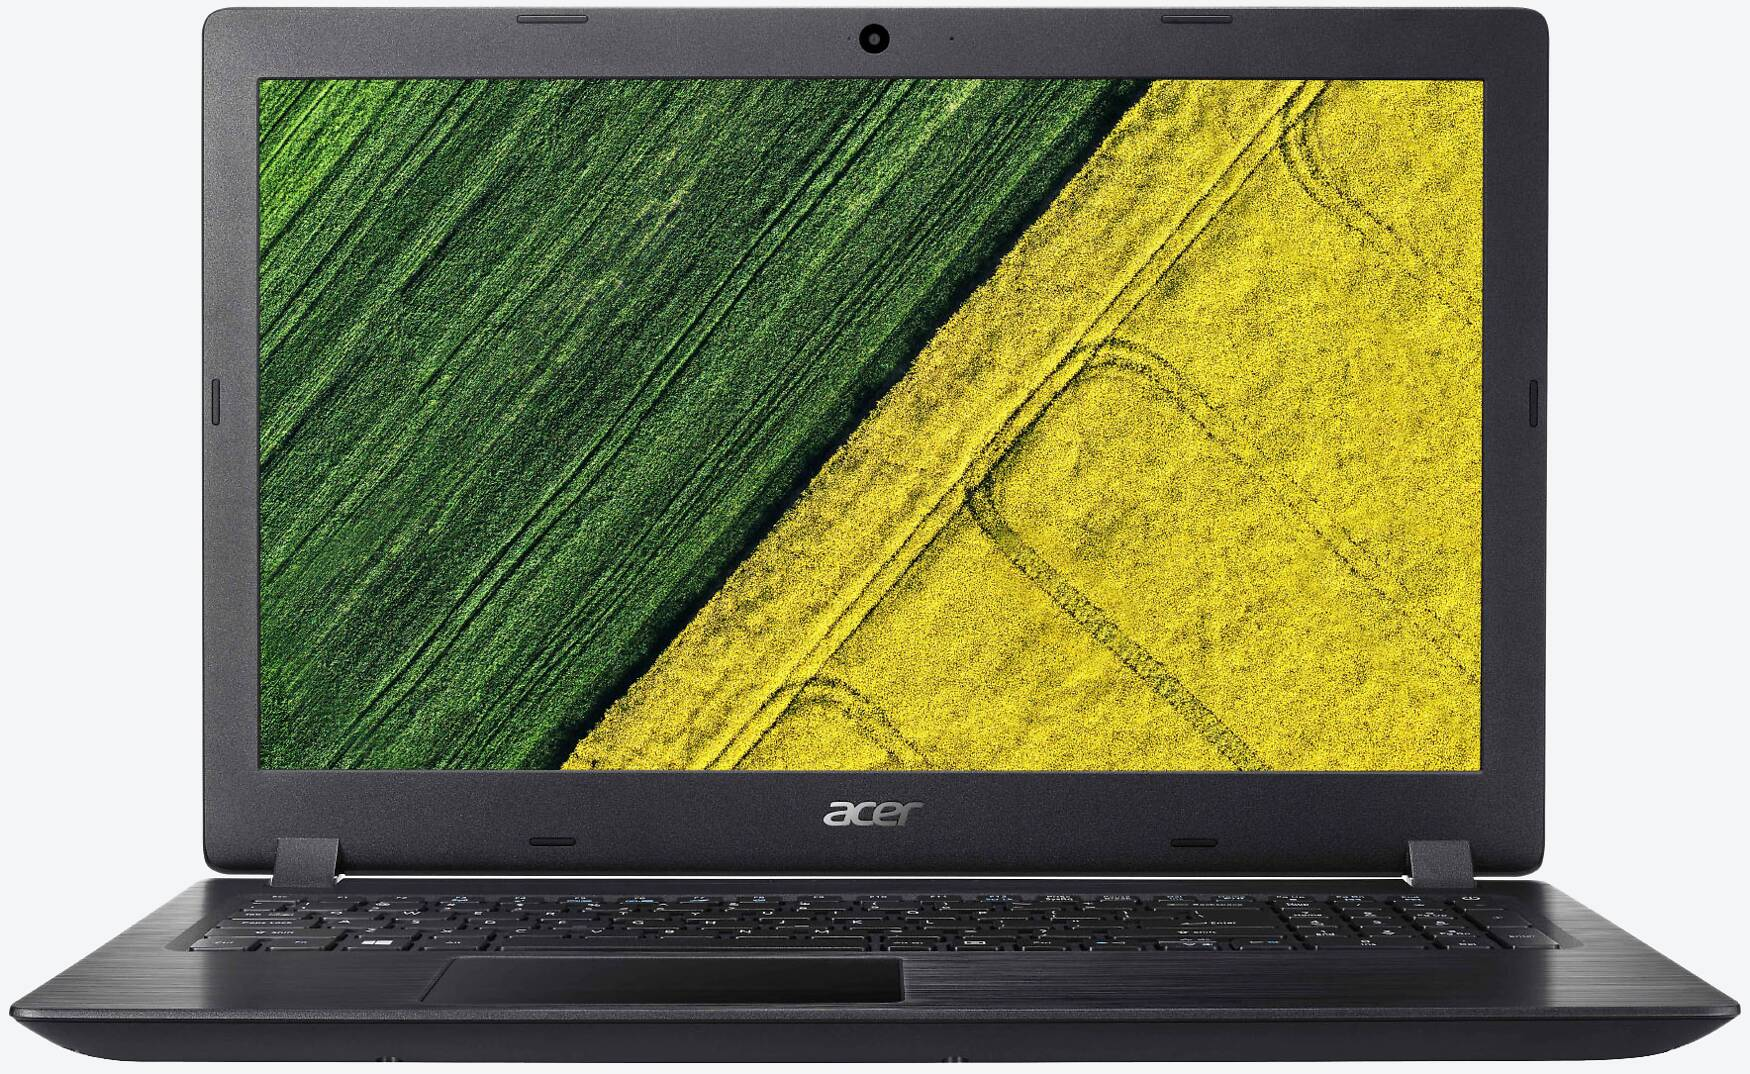 Acer Aspire 3 A317-51-73MB